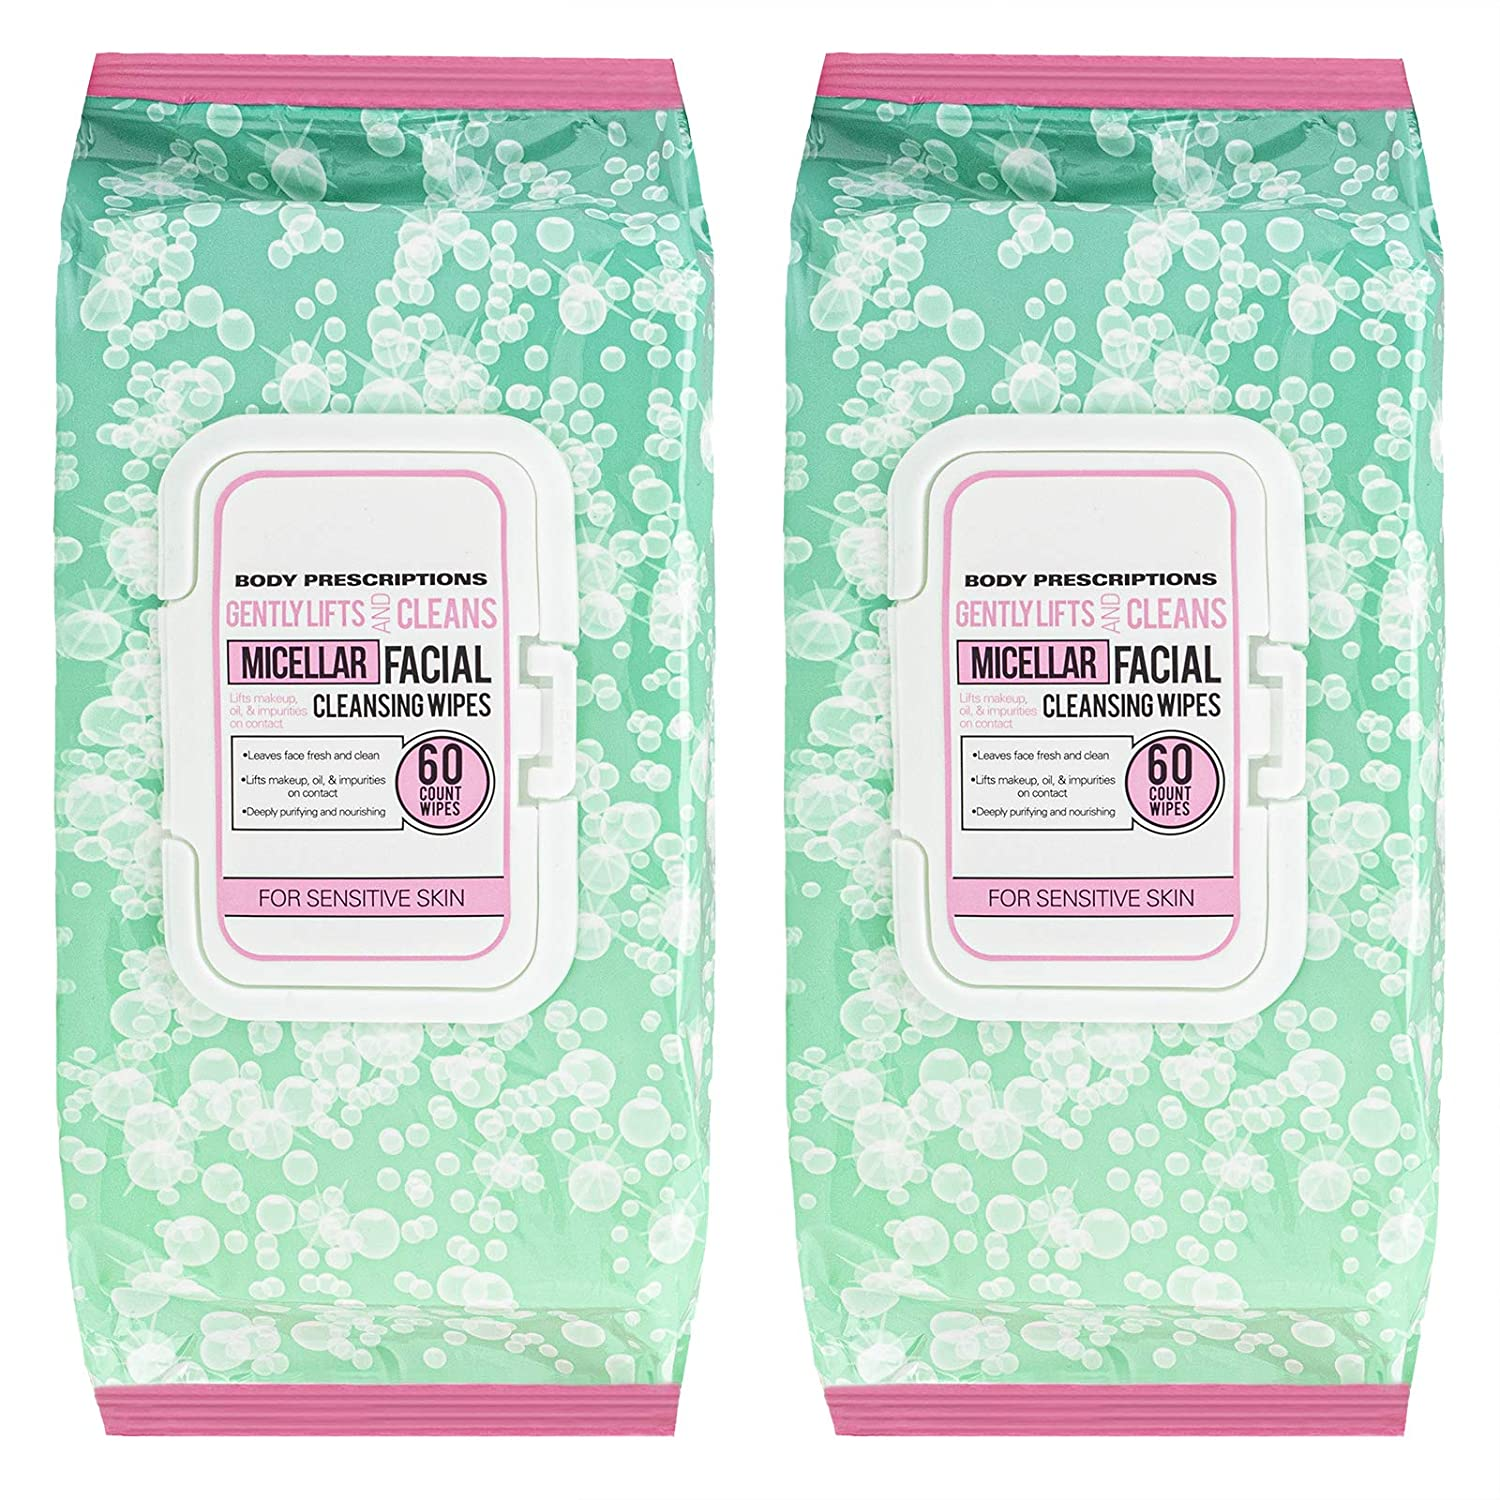 Body Prescriptions - 2 Pack (60 Count Each) Fresh and Clean Micellar Facial Cleansing Wipes